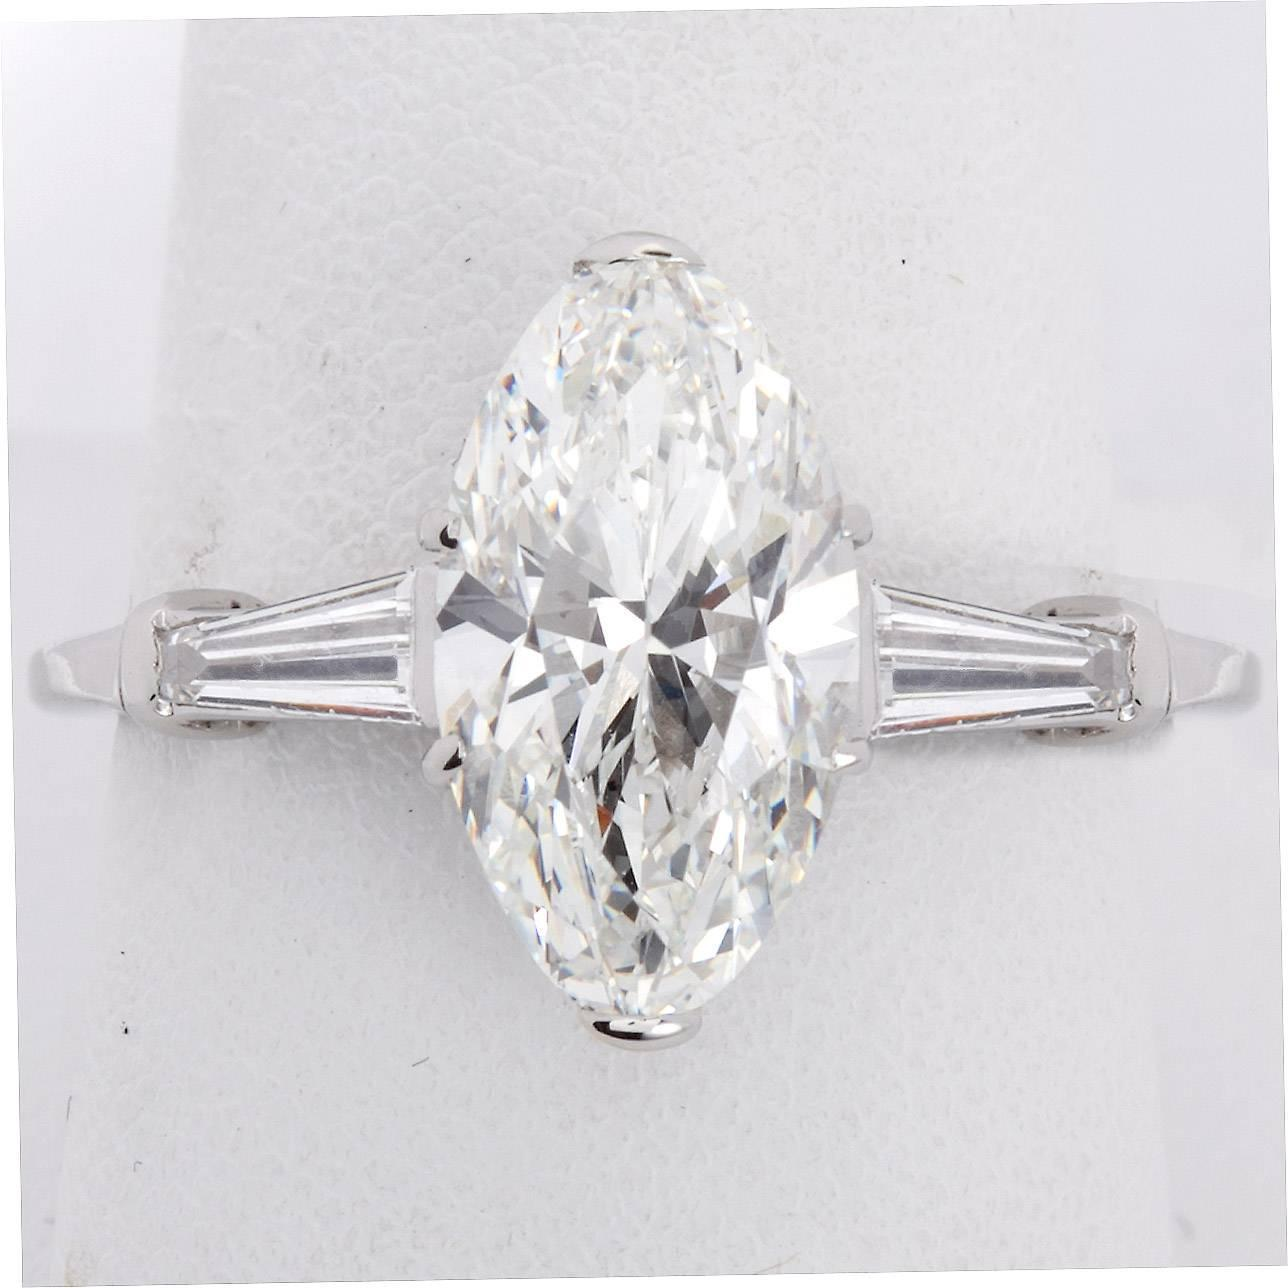 3 Carat GIA Cert Oval Brilliant Diamond Platinum Engagement Ring For Sale at